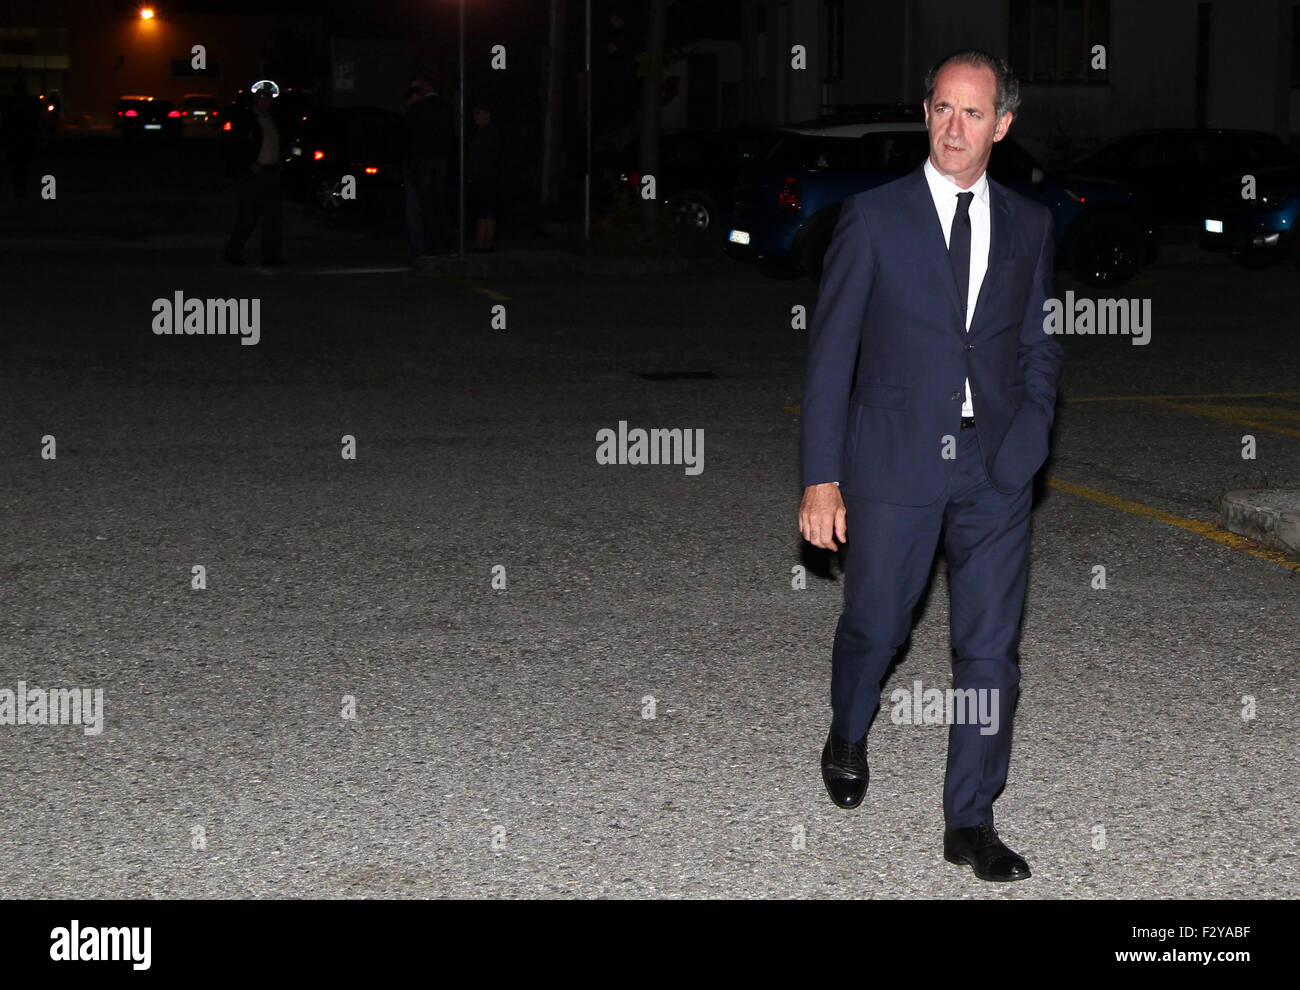 Pordenone, Italy. 25th Sep, 2015.  Luca Zaia, president of the Veneto Region attends at Lega Nord party (Northern - Stock Image